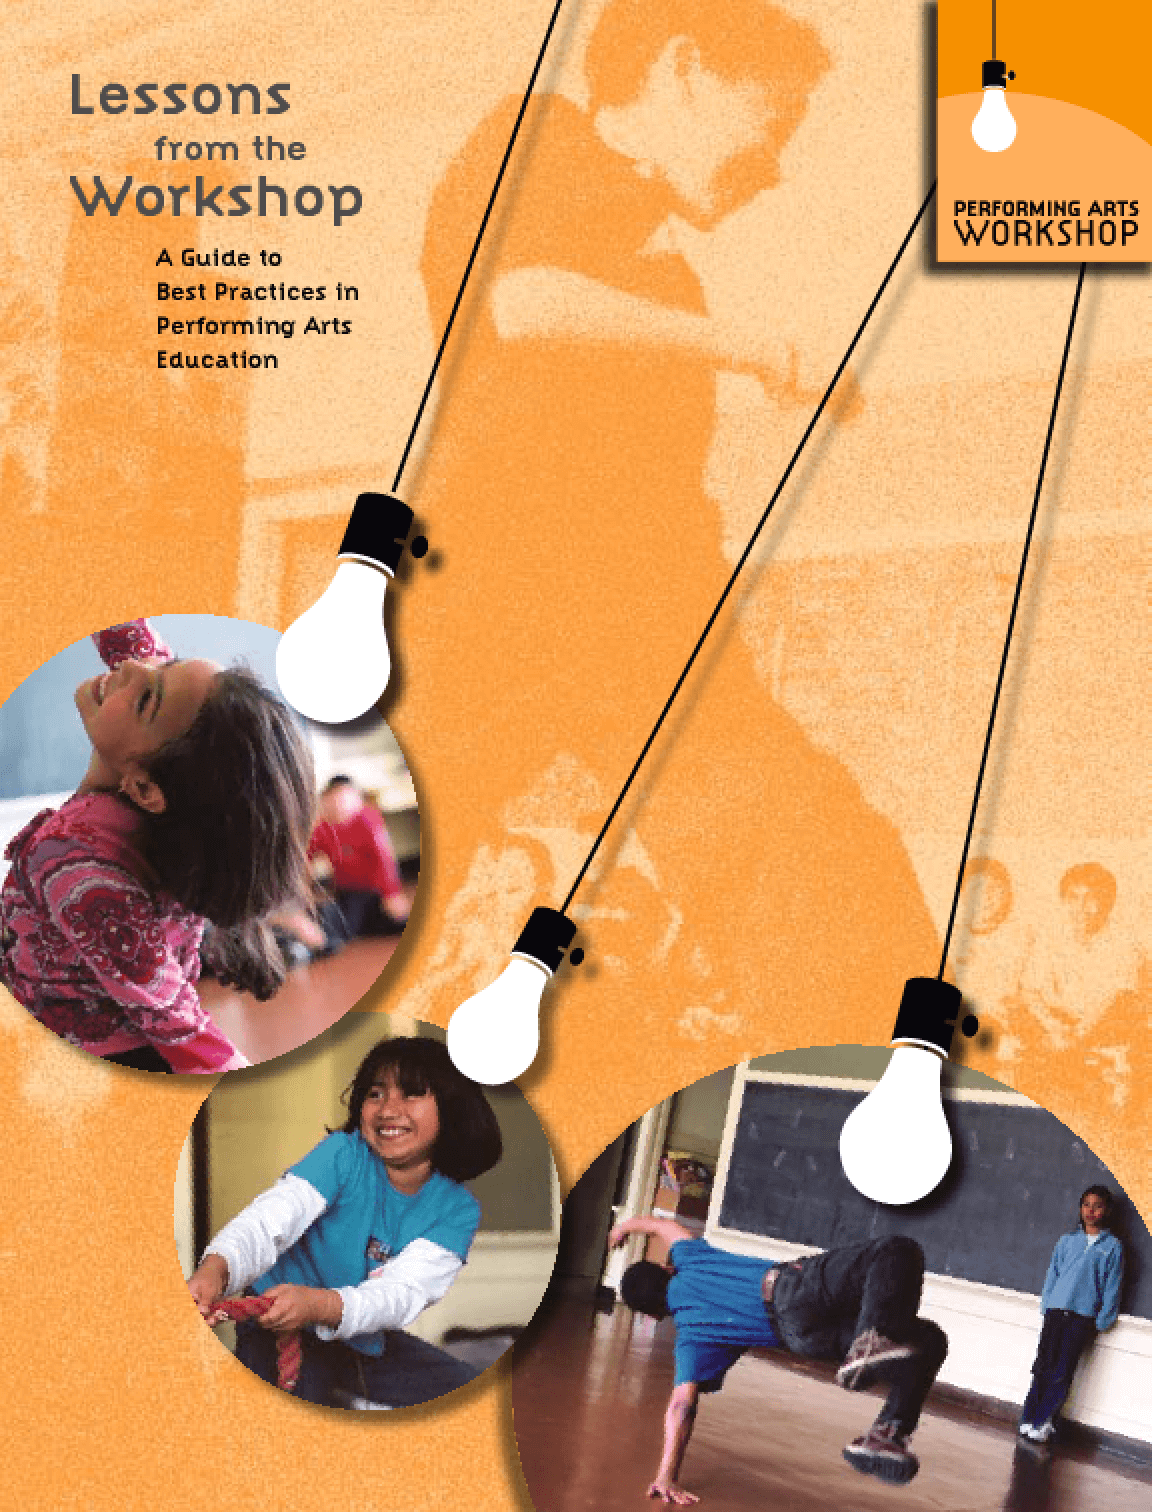 Lessons from the Workshop: A Guide to Best Practices in Performing Arts Education